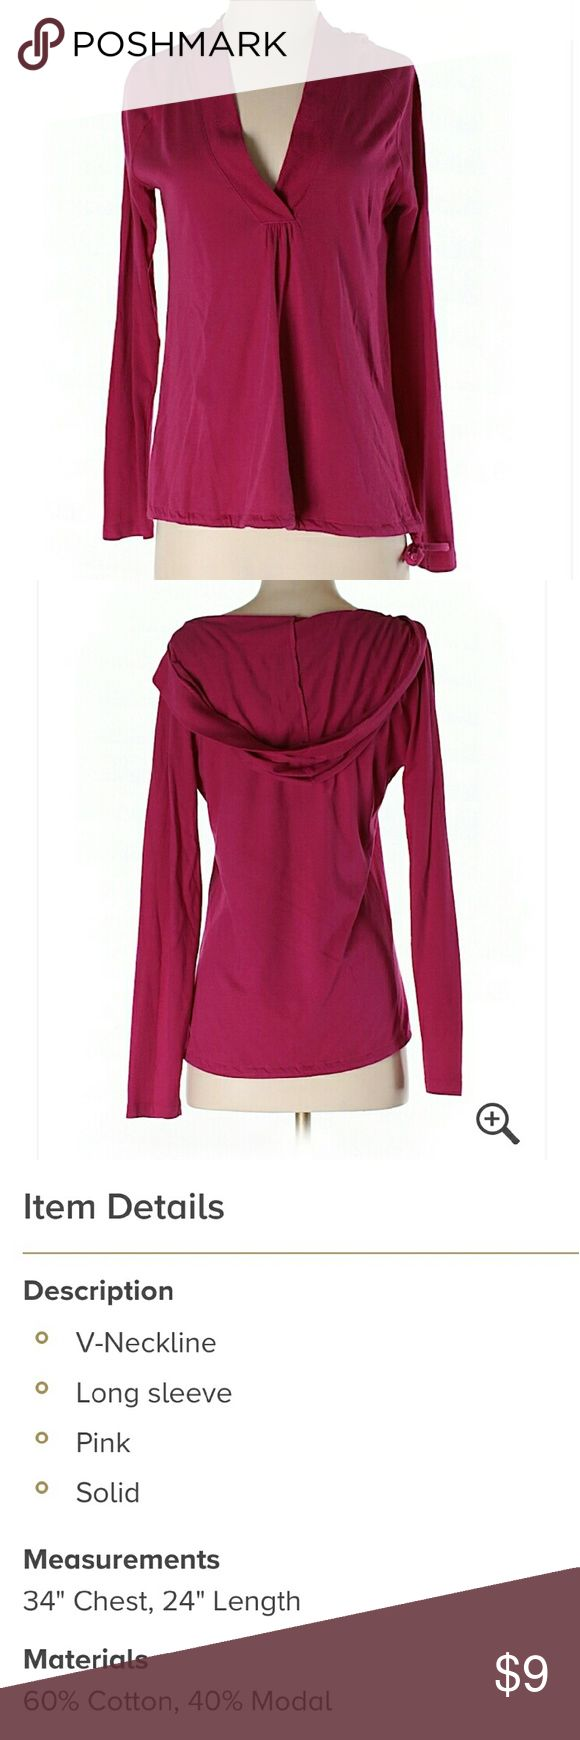 Old navy long sleeved top size xs Dark pink long sleeves with hood. From old navy maybe worn once or twice no flaws Old Navy Tops Tees - Long Sleeve